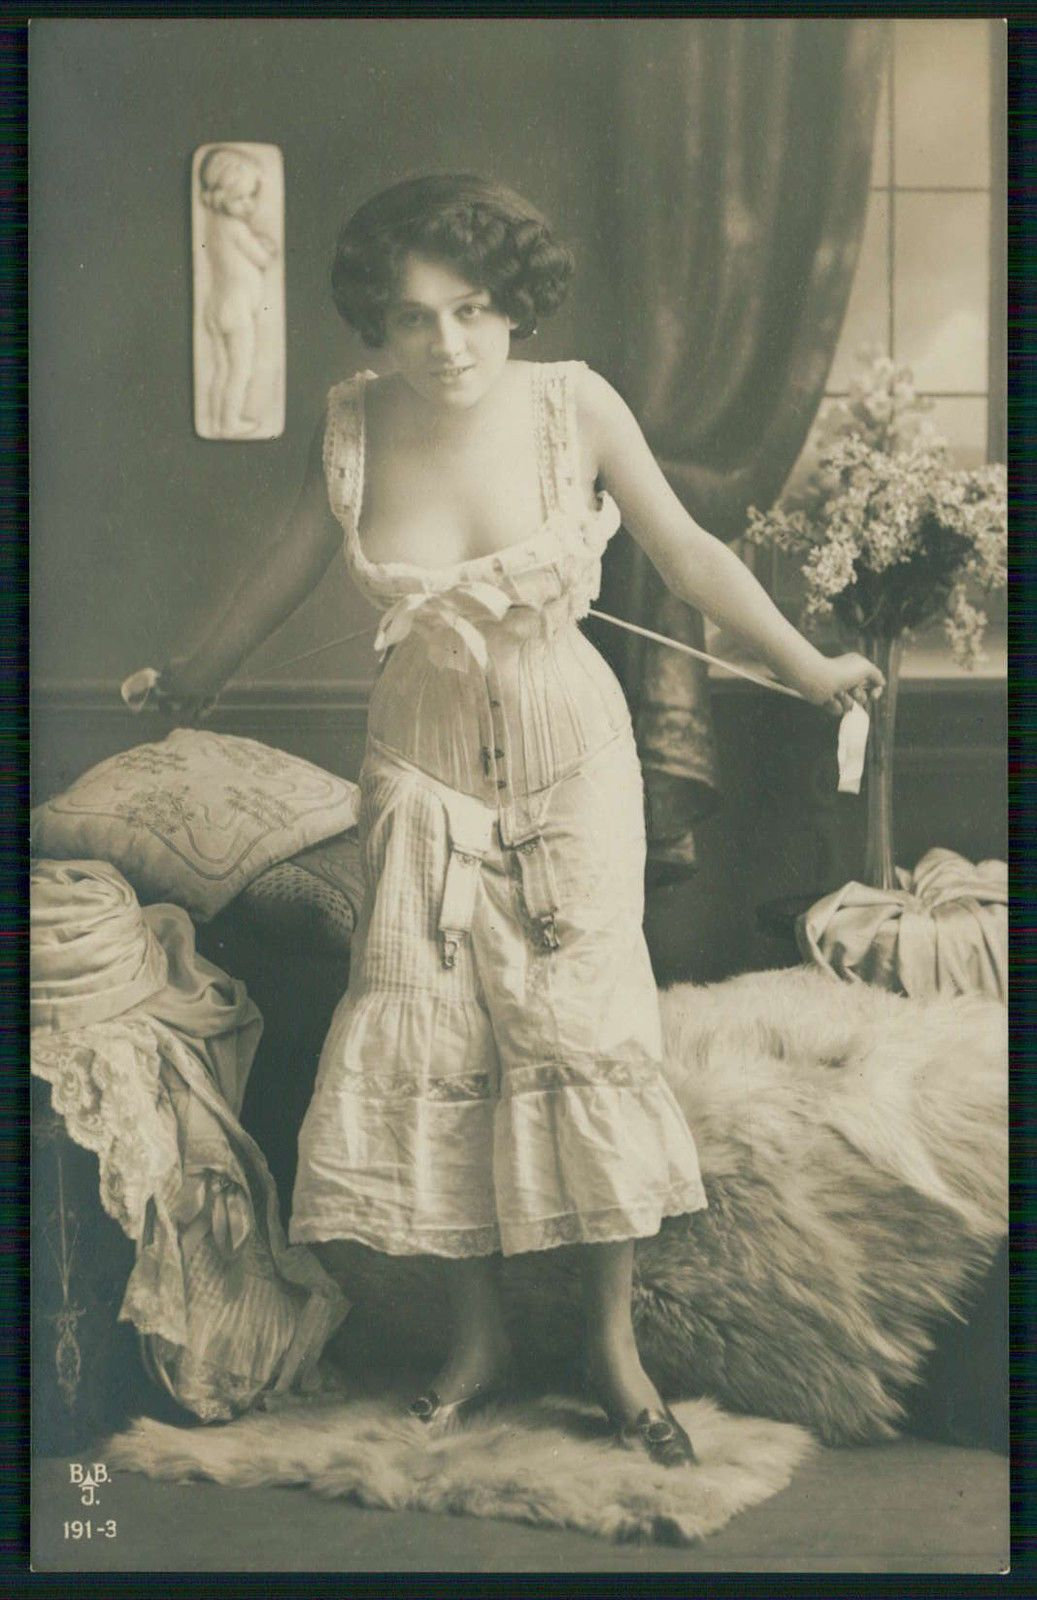 image Rare antique porn early 1900s a free ride